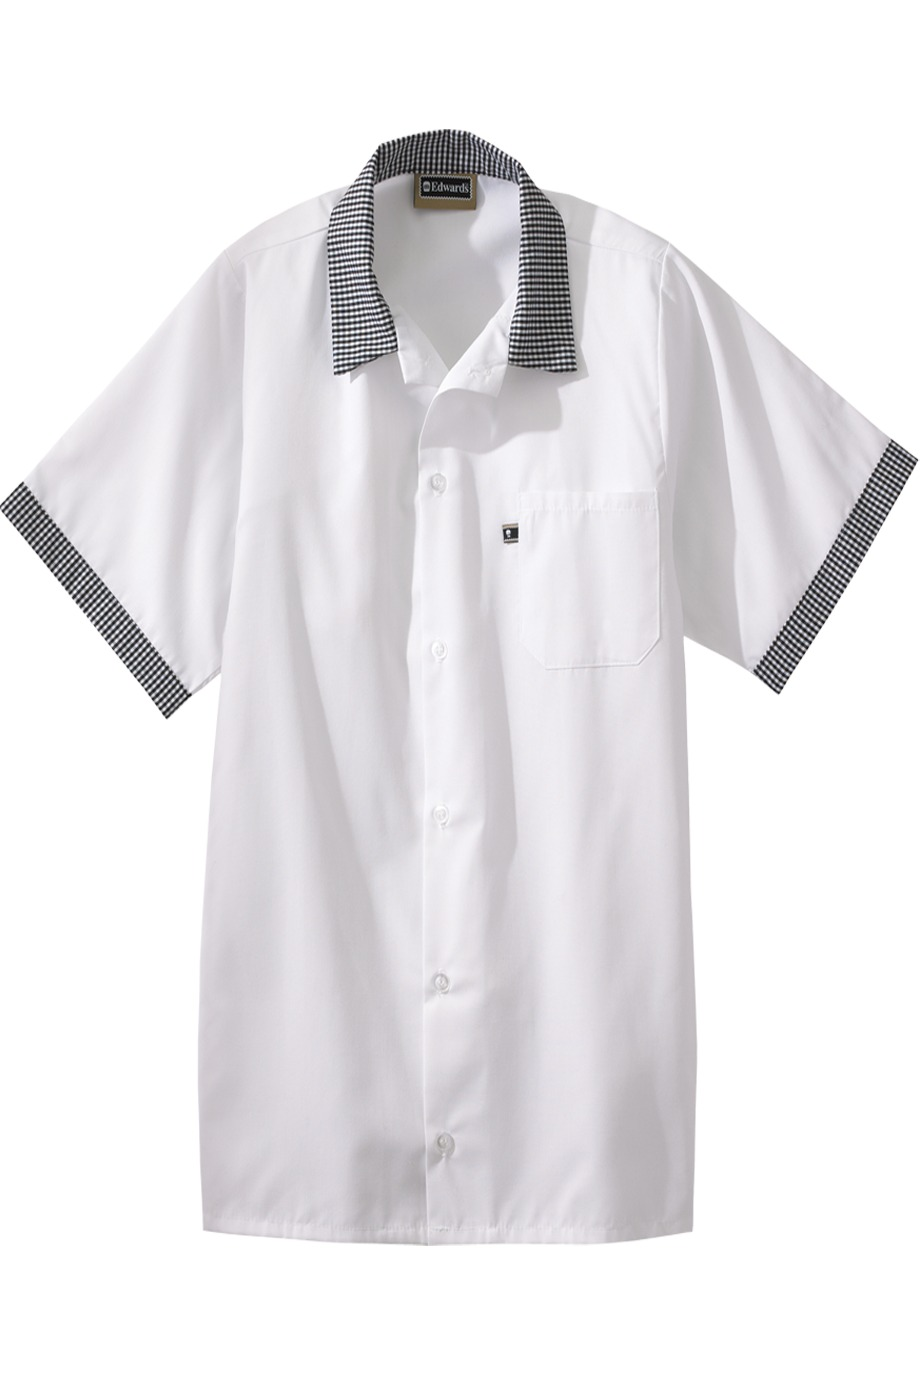 Edwards Garment 1304 - Cook Shirt